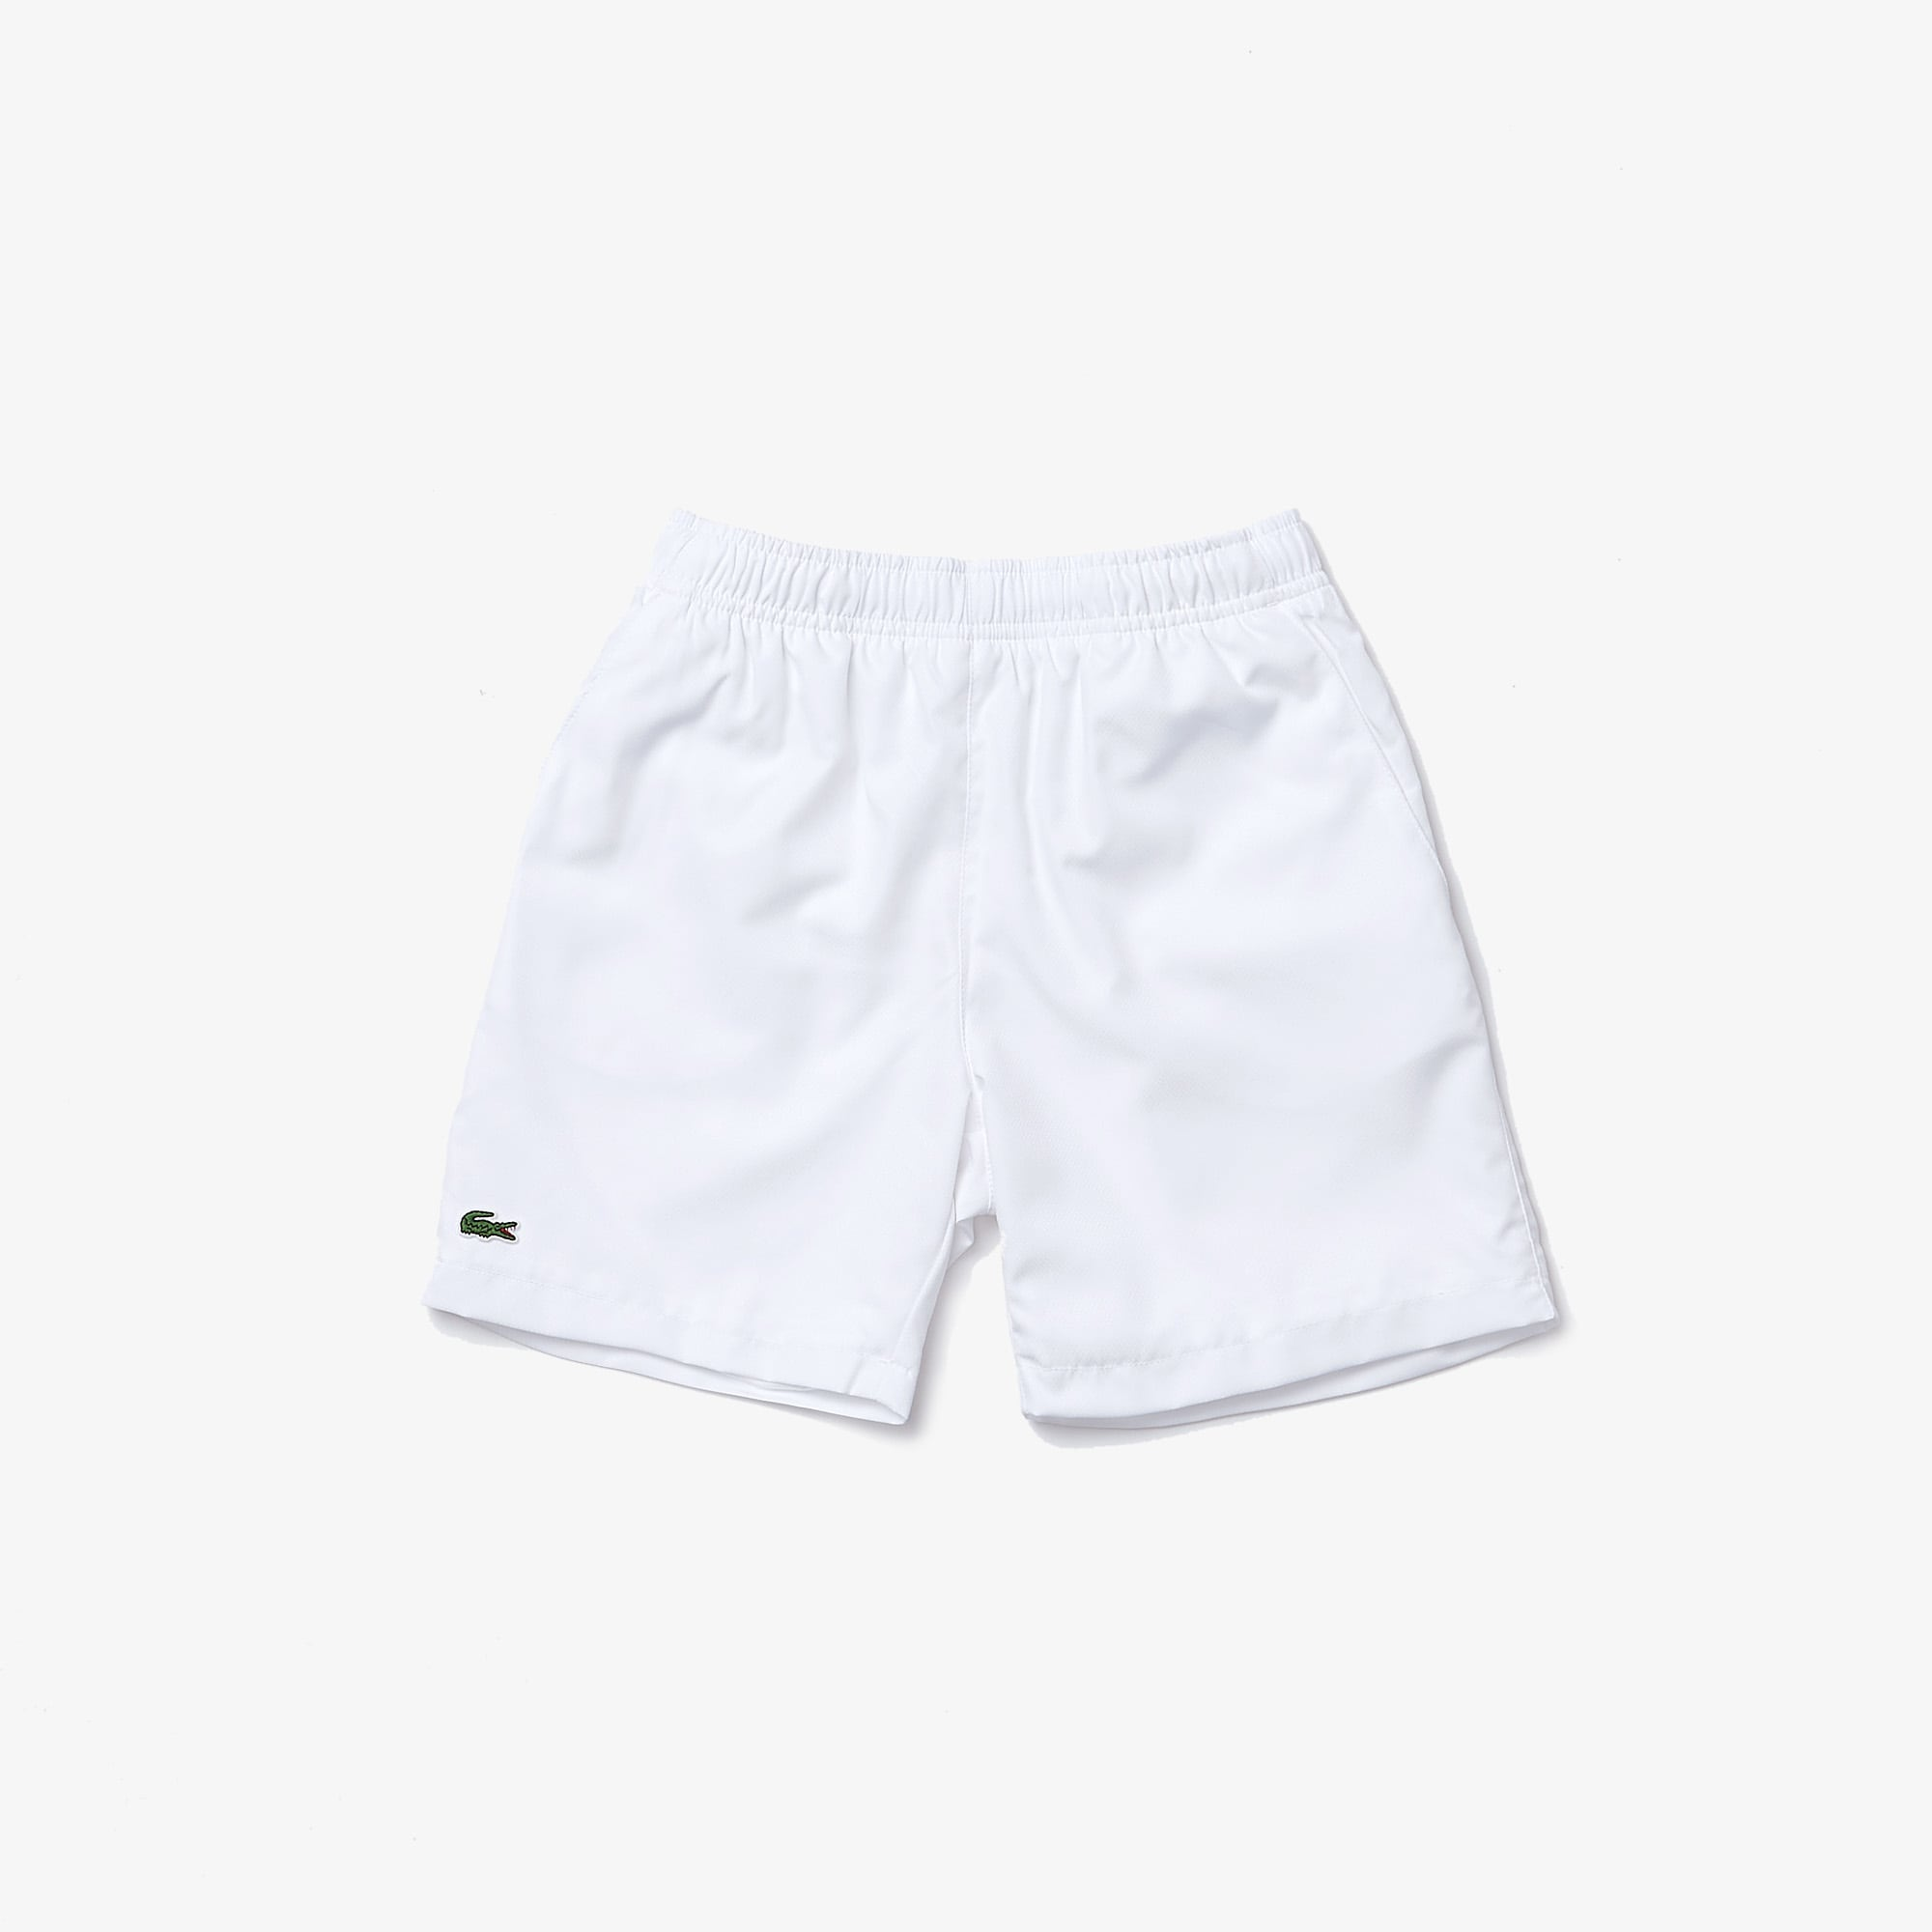 Collection Enfant Enfant Collection Collection Lacoste Enfant Lacoste 5qwXWEU4